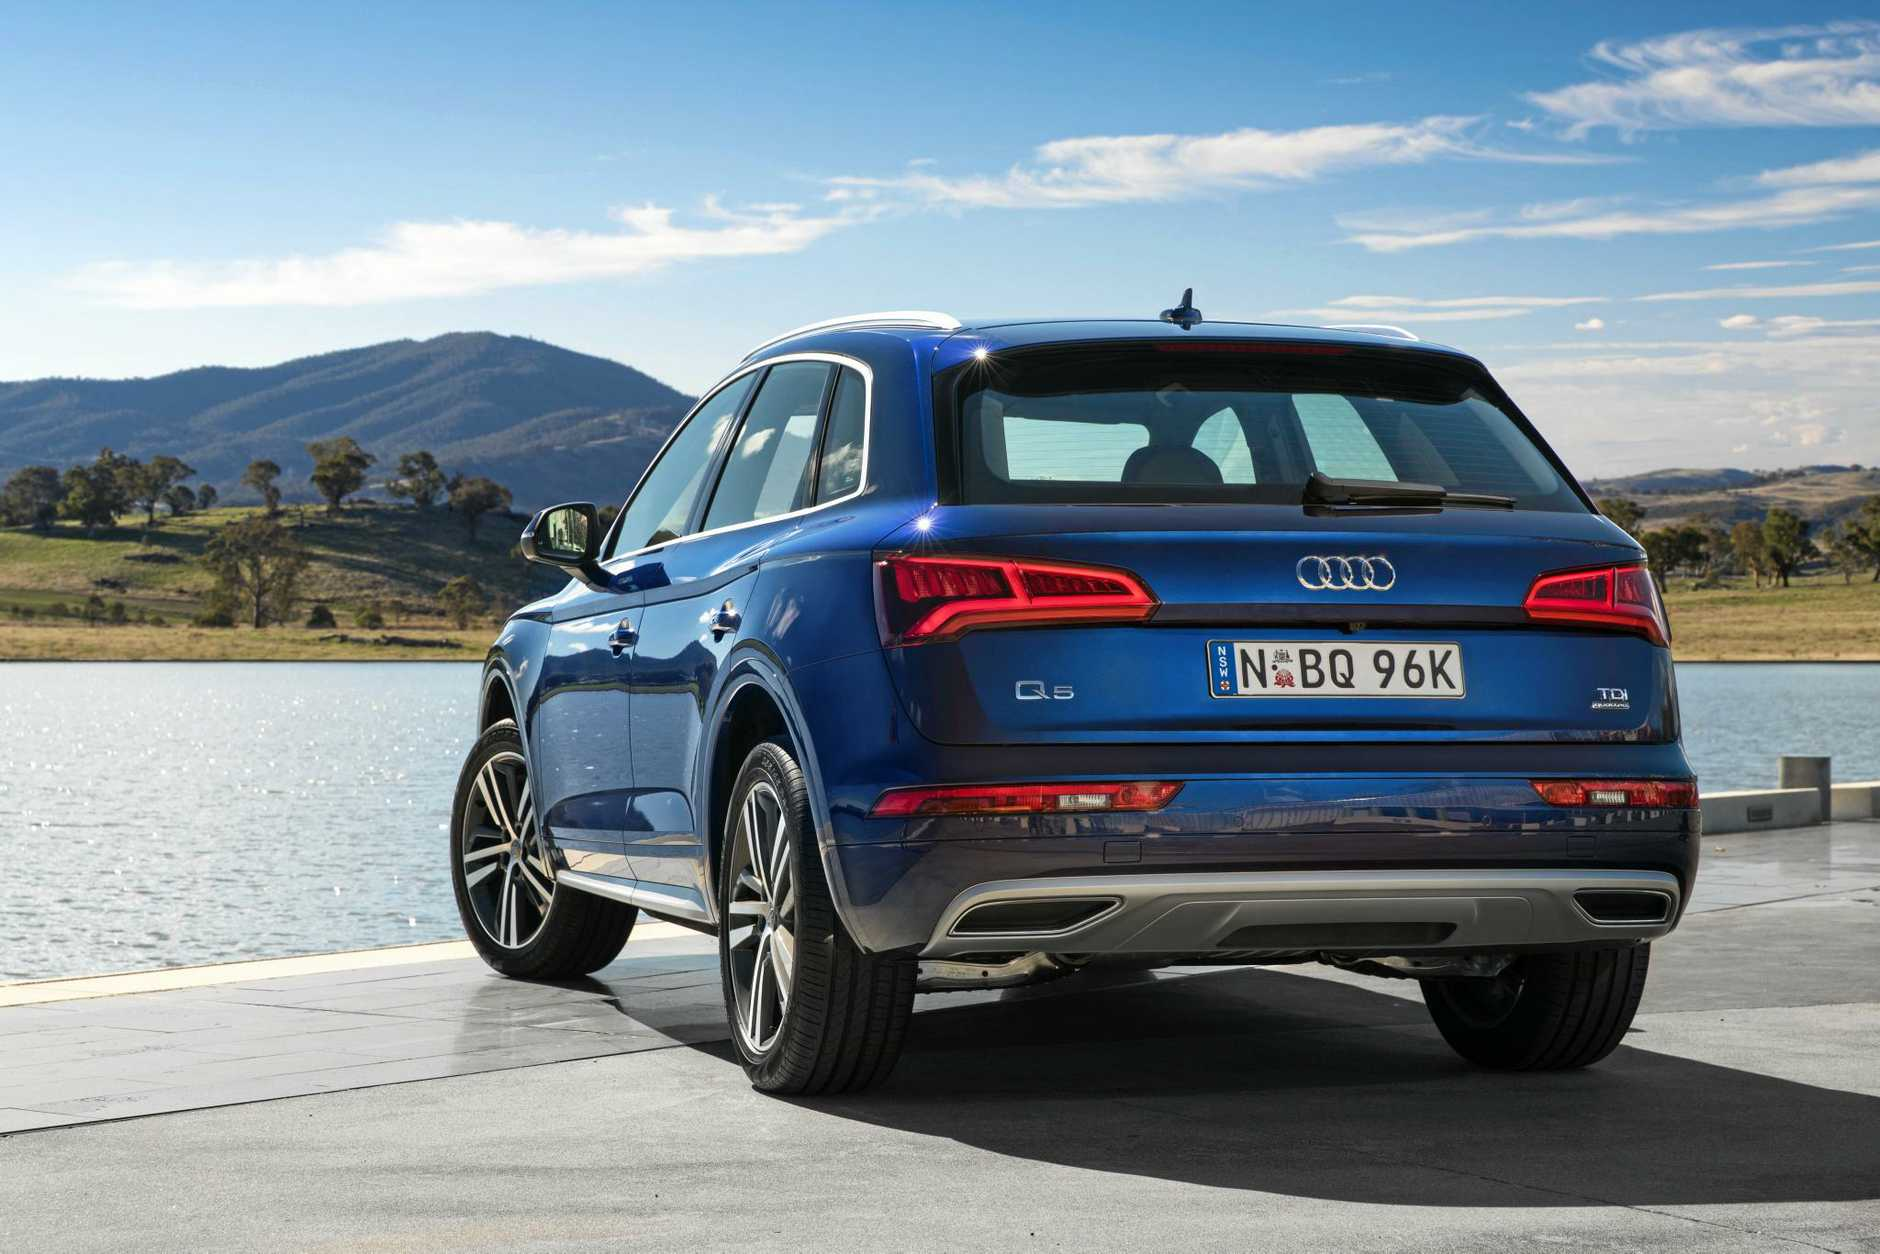 Audi has launched the second generation Q5, with a choice of petrol and diesel engines.